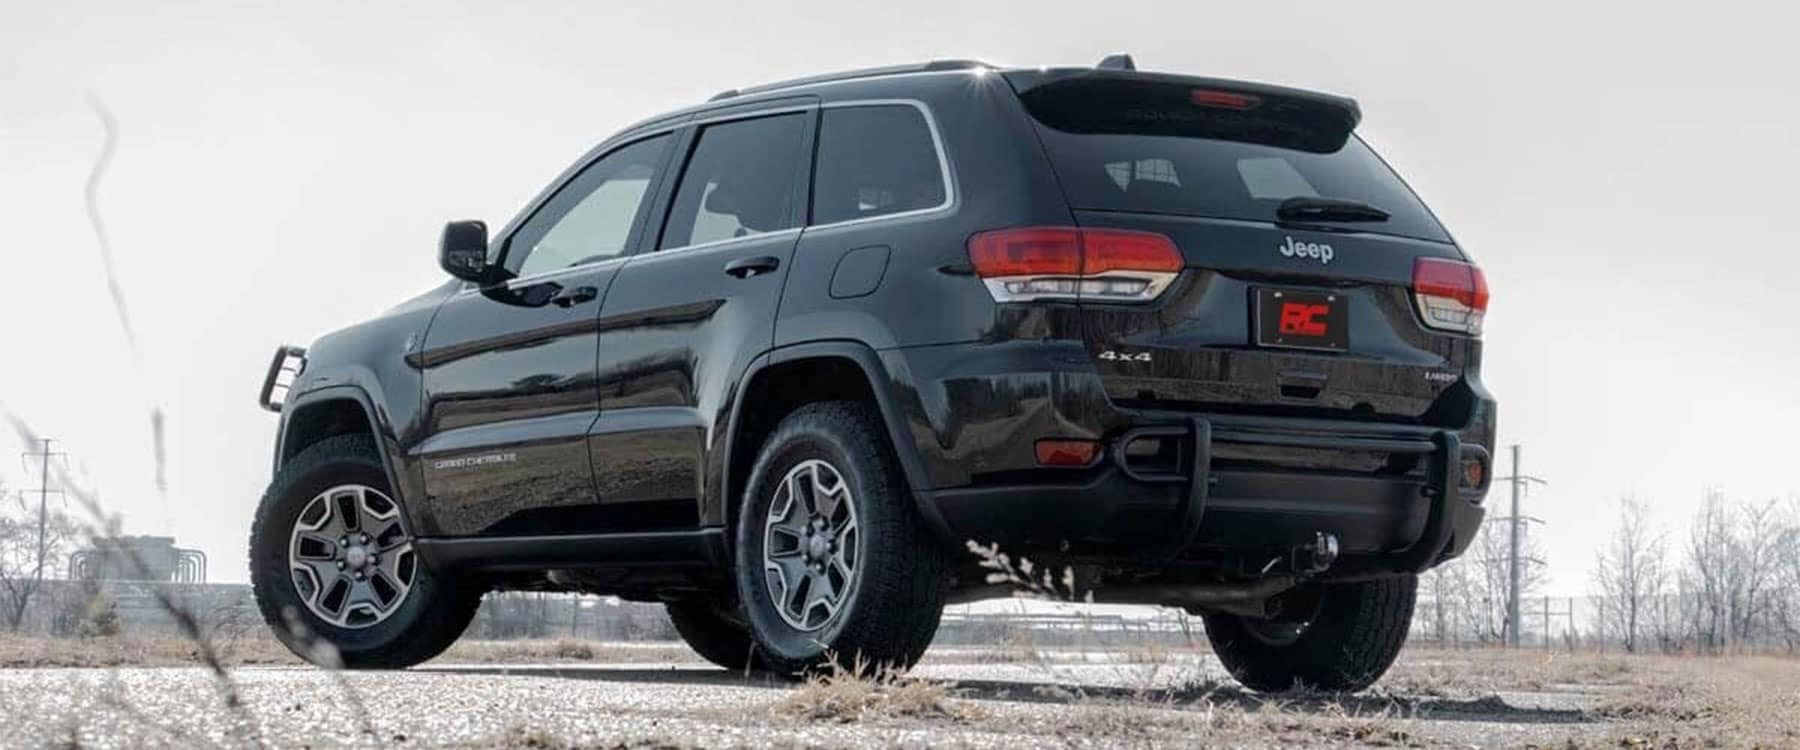 Lifted Jeep Grand Cherokee